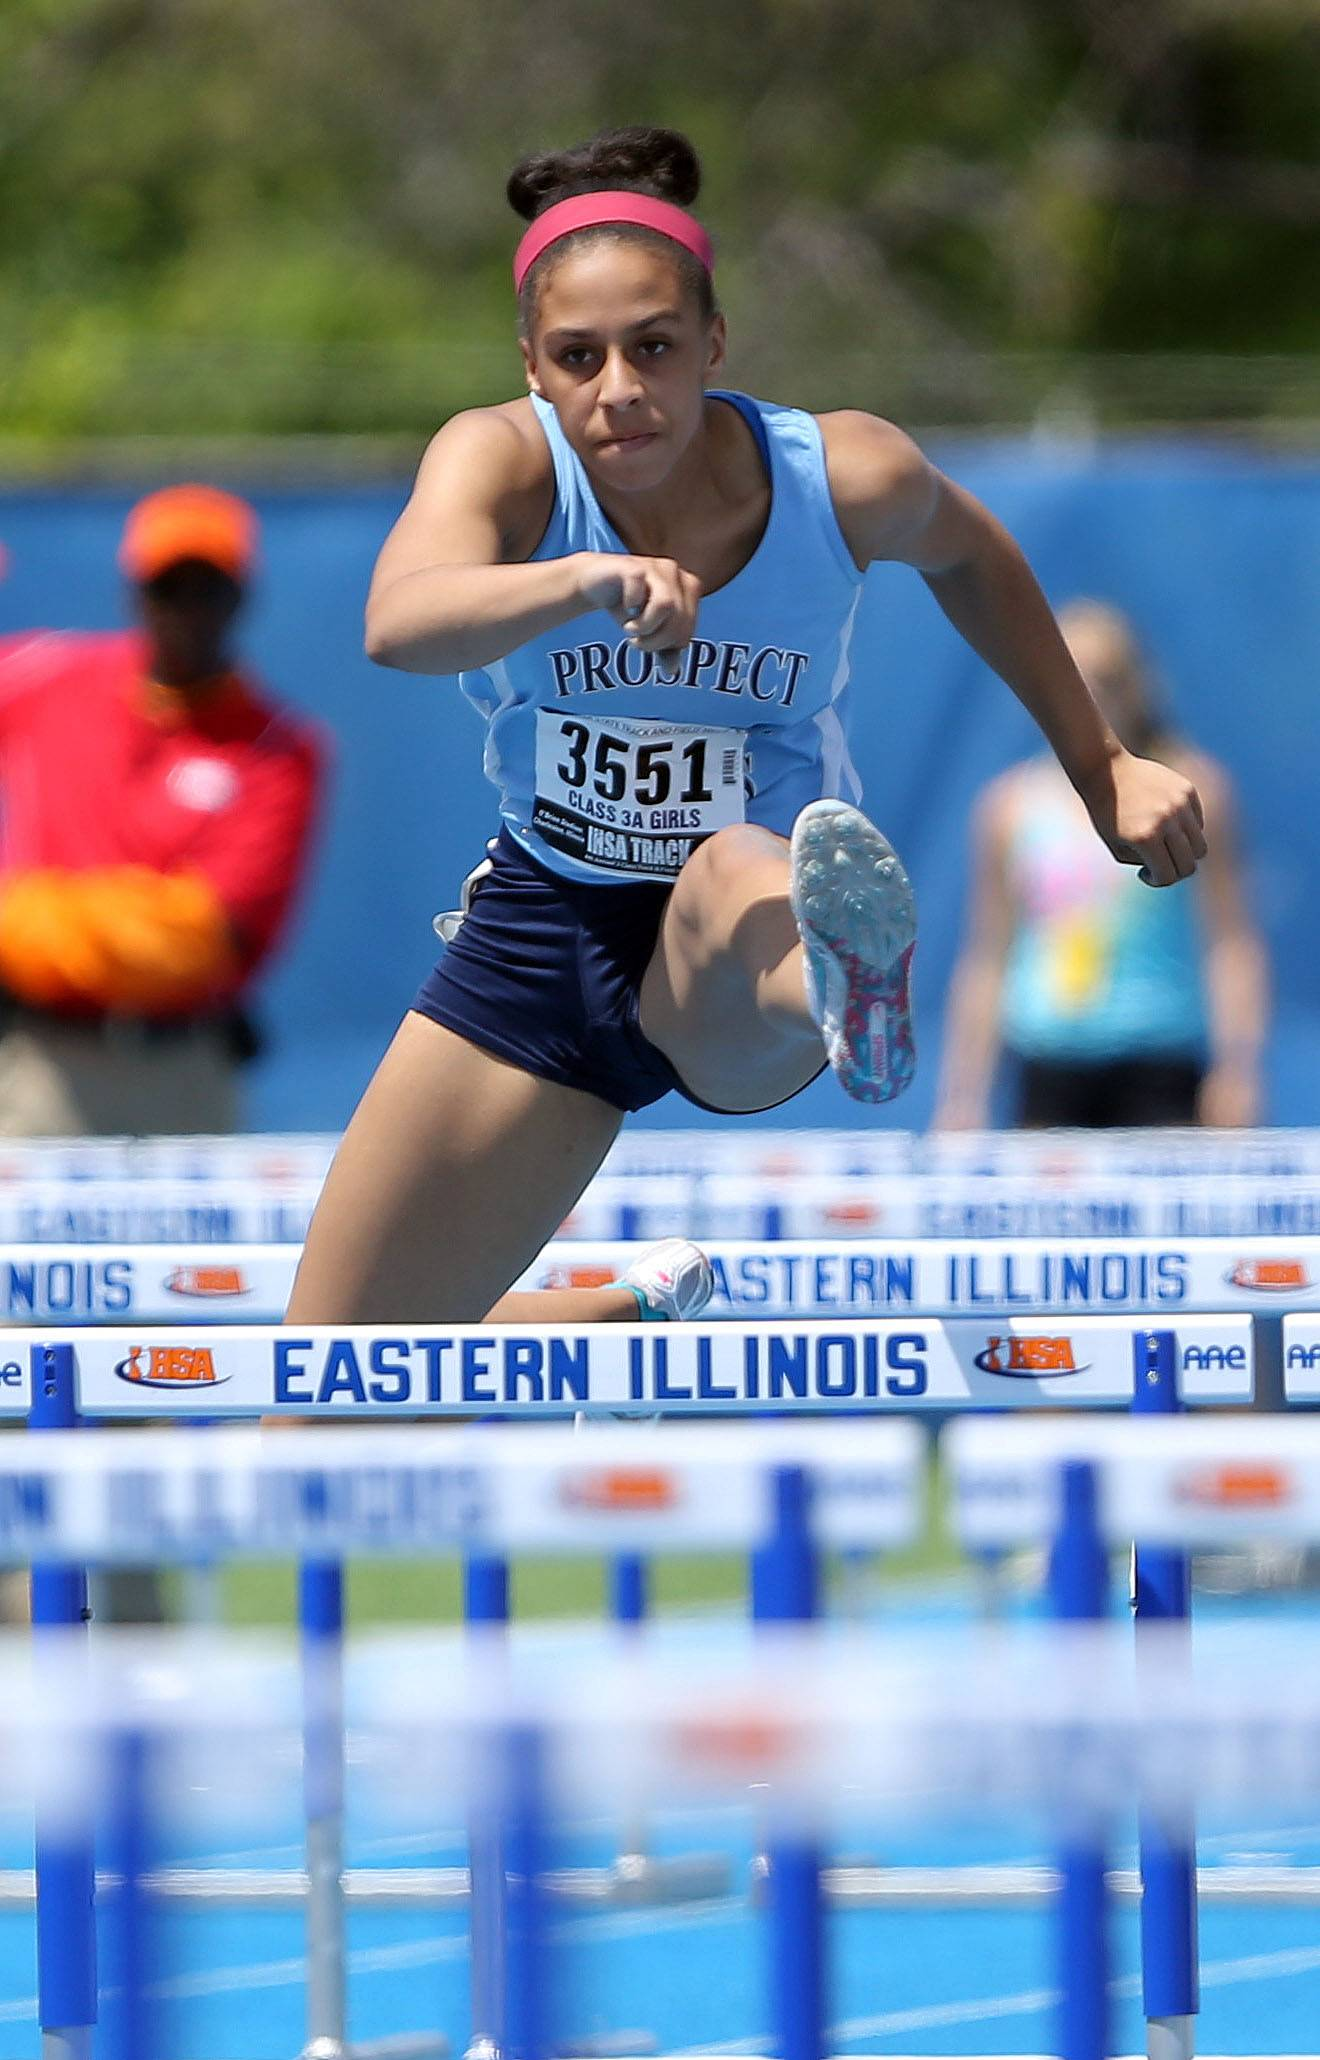 Prospect's Maya Mason competes in the 100-meter high hurdles during the Class 3A prelims of the girls track and field state meet at Eastern Illinois University in Charleston on Friday.